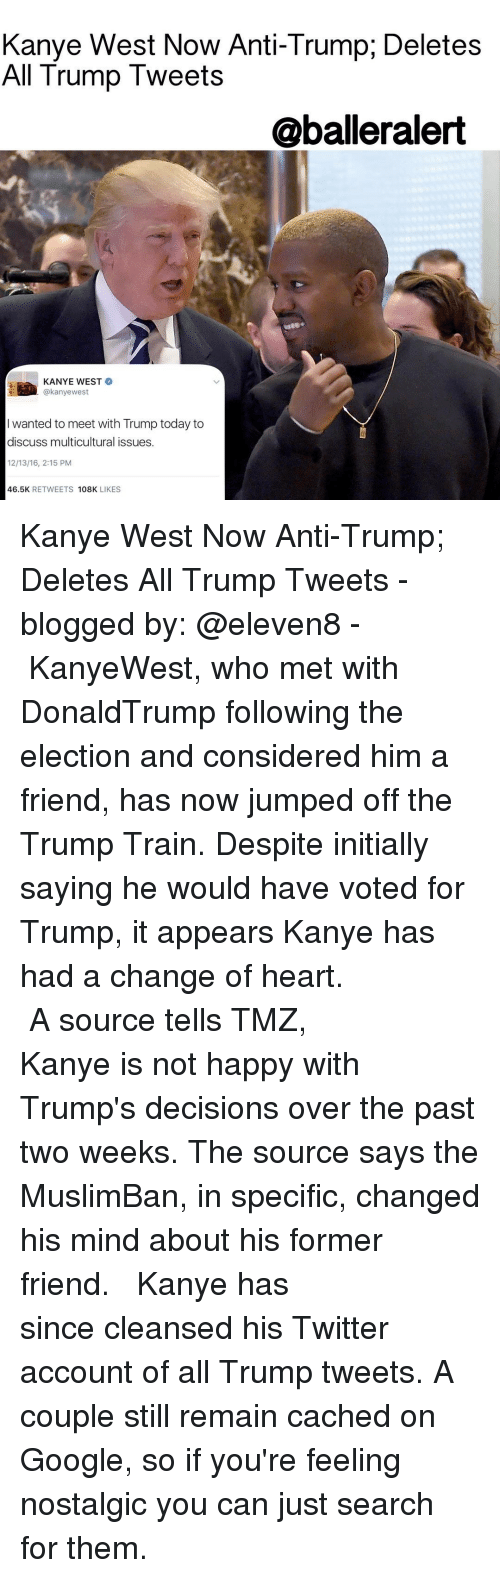 Initialisms: Kanye West Now Anti-Trump, Deletes  All Trump Tweets  @balleralert  KANYE WEST  kanyewest  wanted to meet with Trump today to  discuss multicultural issues.  46.5K  RETWEETS  108K  LIKES Kanye West Now Anti-Trump; Deletes All Trump Tweets - blogged by: @eleven8 - ⠀⠀⠀⠀⠀⠀⠀⠀⠀ ⠀⠀⠀⠀⠀⠀⠀⠀⠀ KanyeWest, who met with DonaldTrump following the election and considered him a friend, has now jumped off the Trump Train. Despite initially saying he would have voted for Trump, it appears Kanye has had a change of heart. ⠀⠀⠀⠀⠀⠀⠀⠀⠀ ⠀⠀⠀⠀⠀⠀⠀⠀⠀ A source tells TMZ, Kanye is not happy with Trump's decisions over the past two weeks. The source says the MuslimBan, in specific, changed his mind about his former friend. ⠀⠀⠀⠀⠀⠀⠀⠀⠀ ⠀⠀⠀⠀⠀⠀⠀⠀⠀ Kanye has since cleansed his Twitter account of all Trump tweets. A couple still remain cached on Google, so if you're feeling nostalgic you can just search for them.